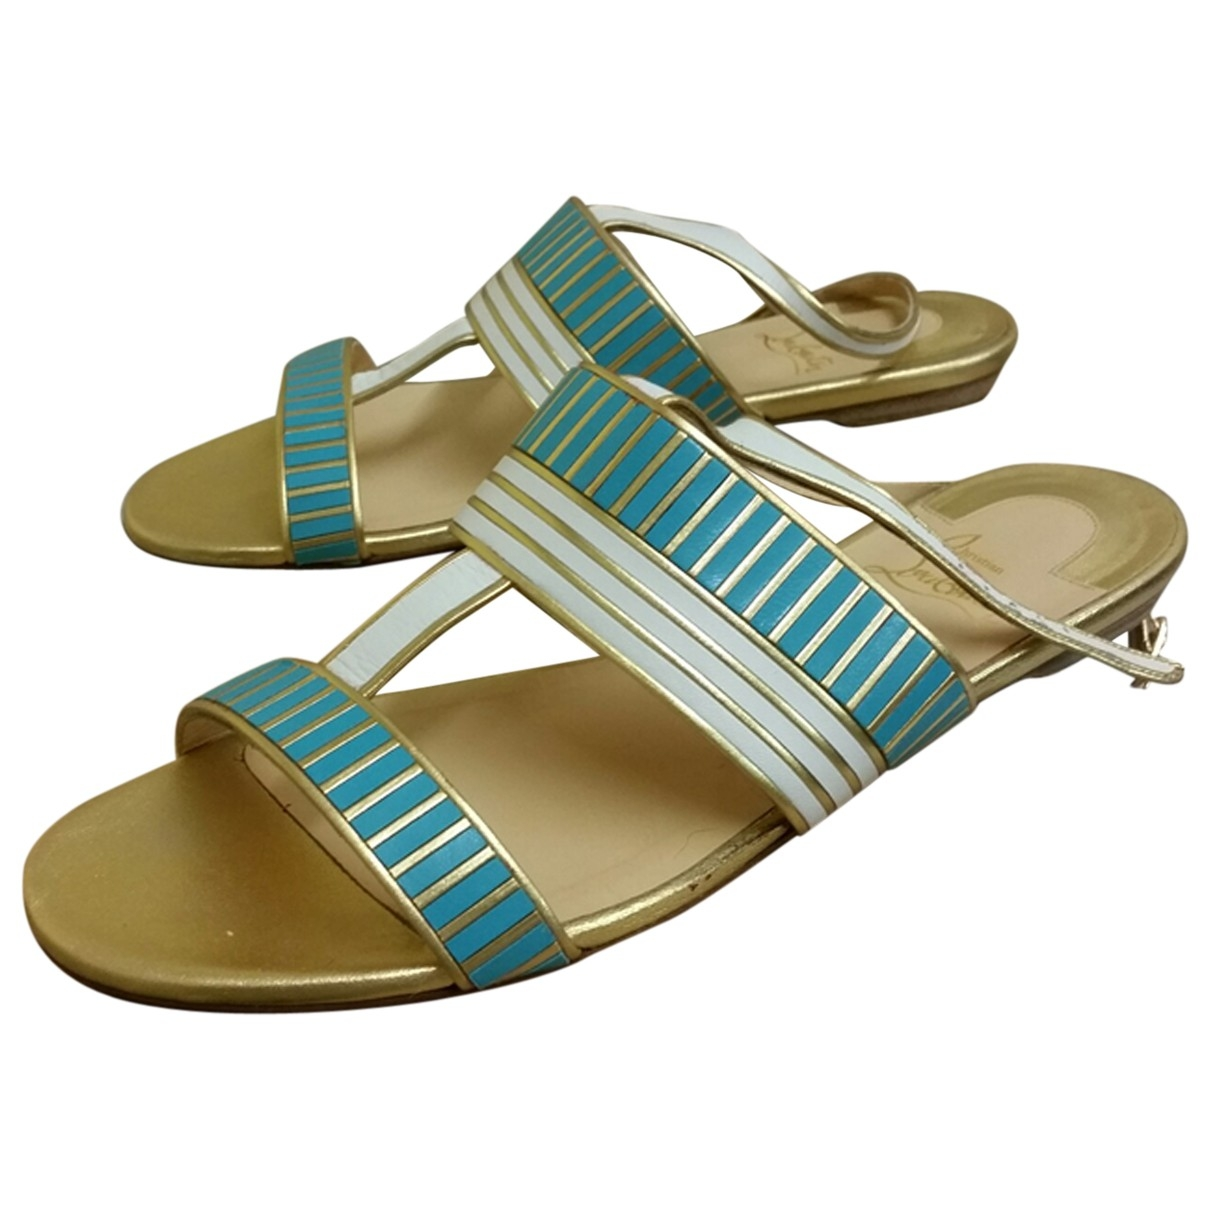 Christian Louboutin \N Turquoise Leather Sandals for Women 39.5 EU